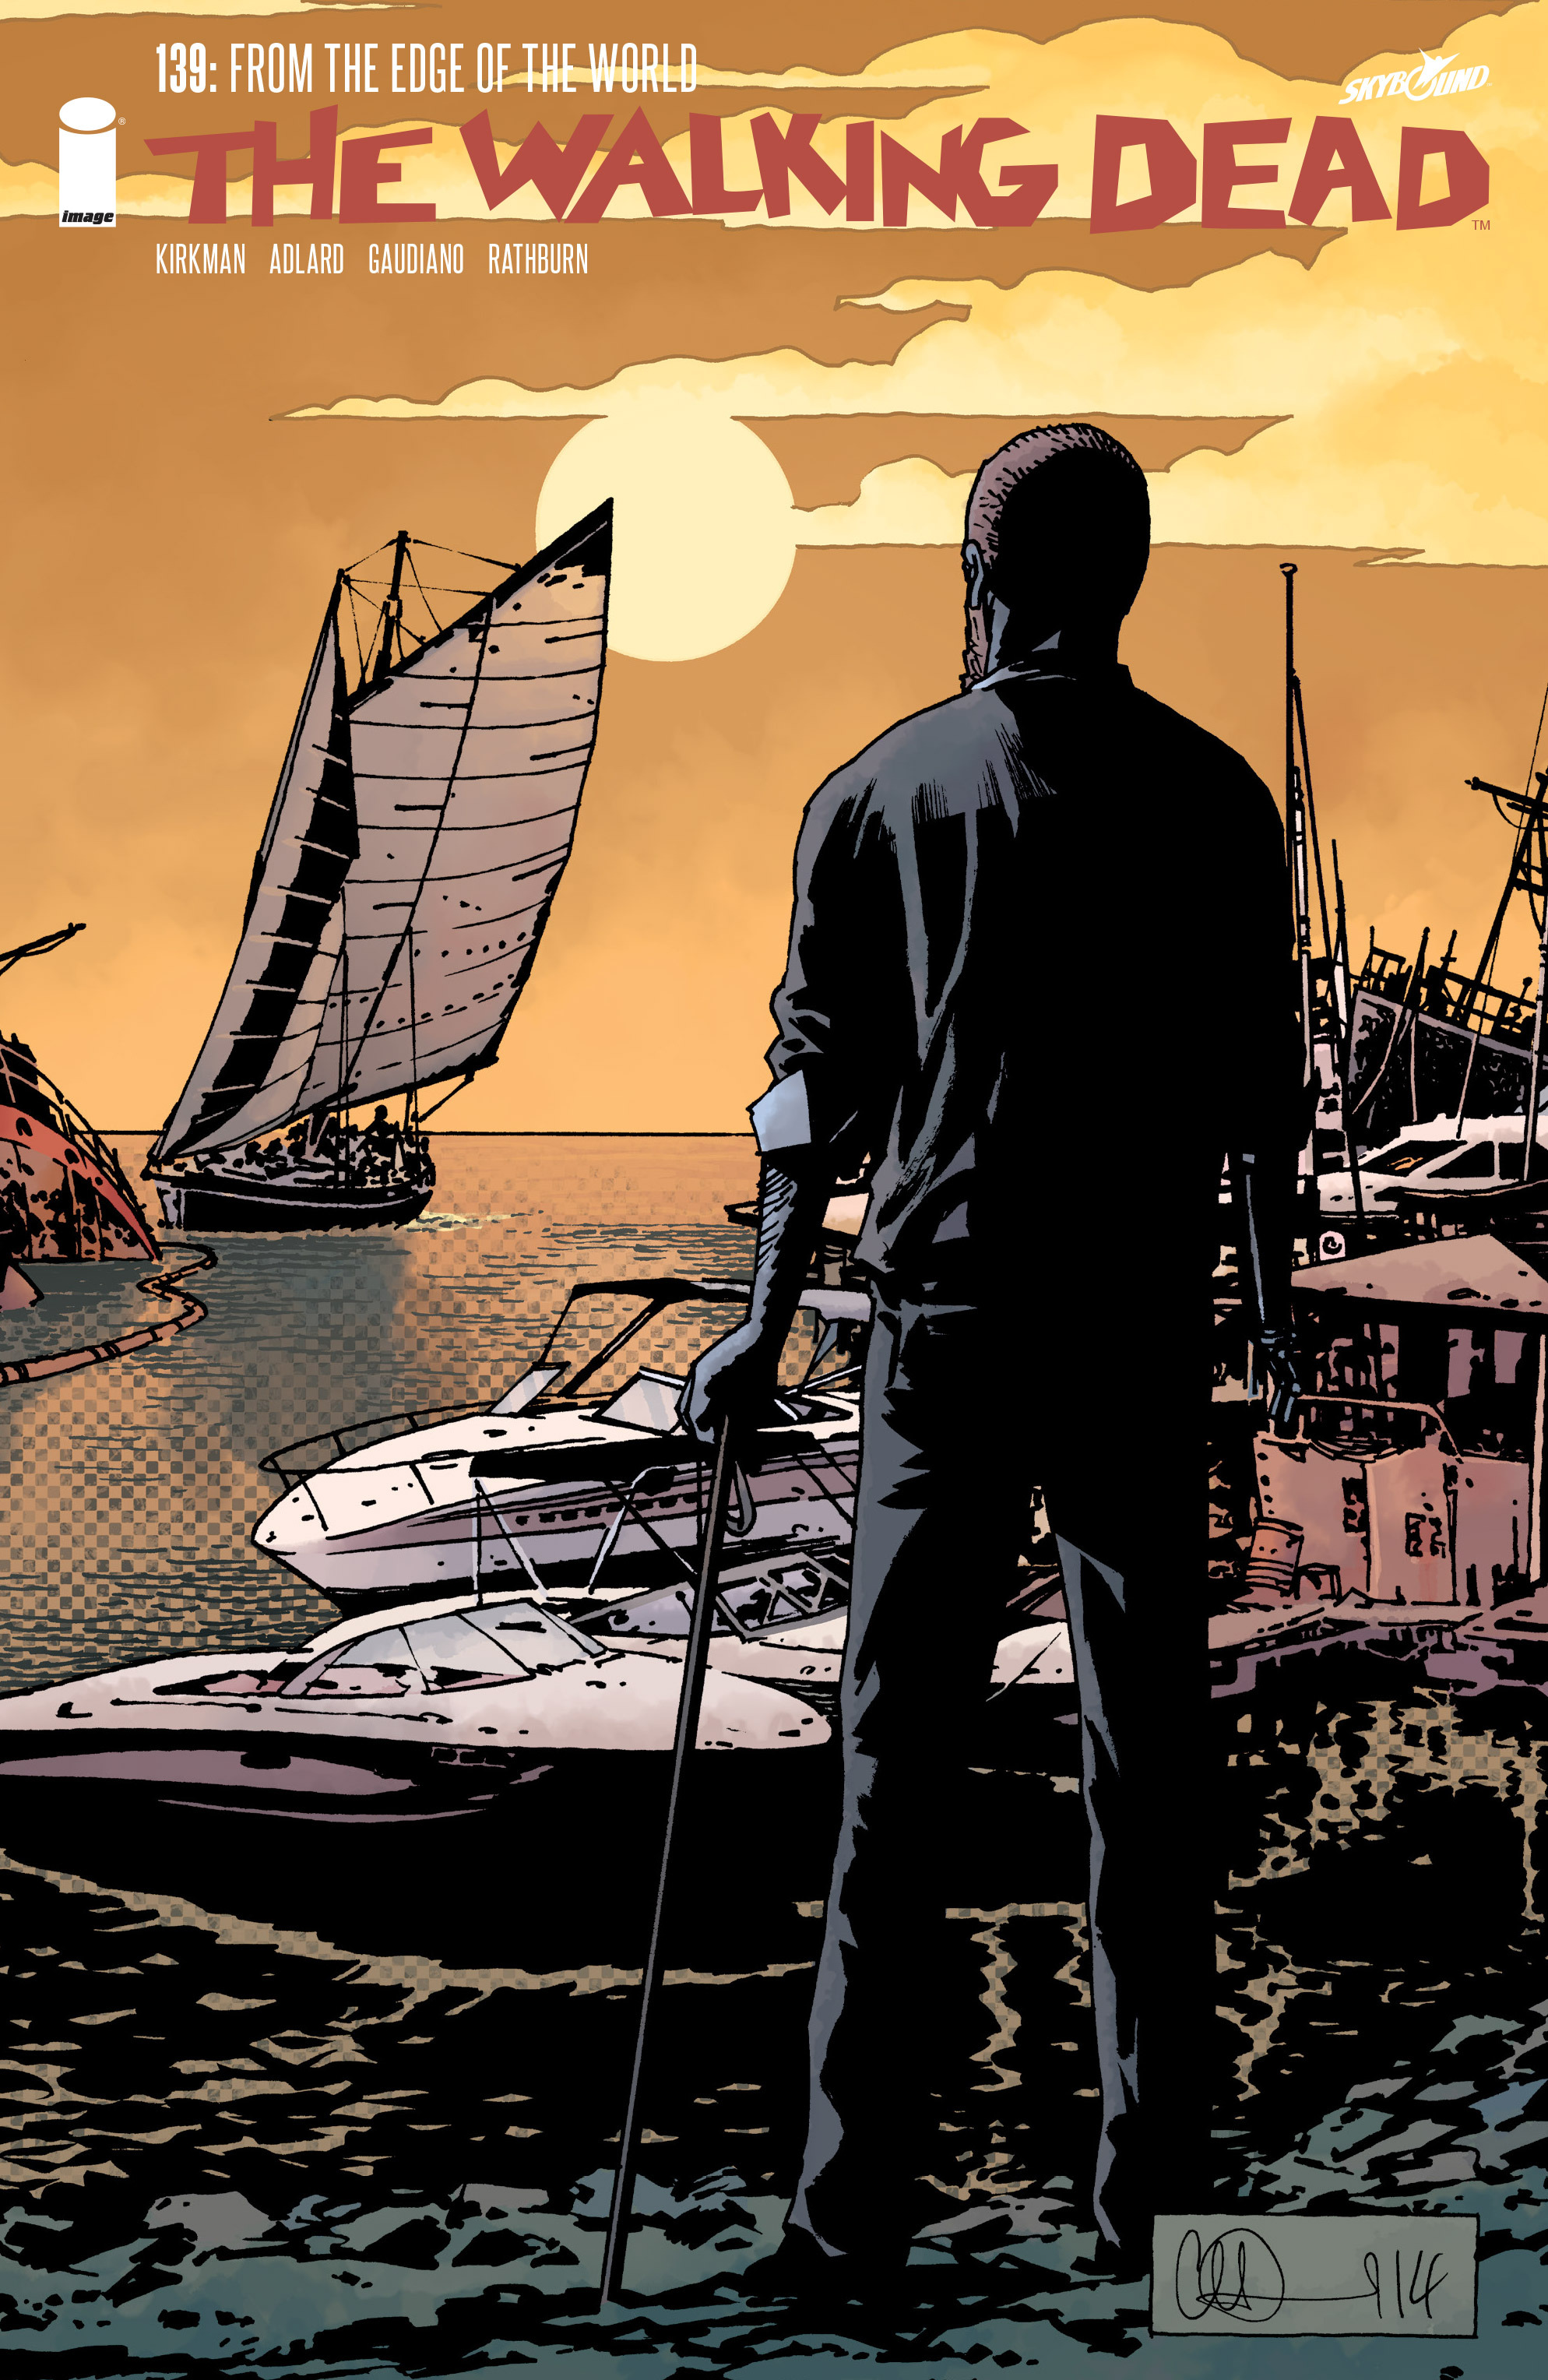 The Walking Dead 139 Page 1